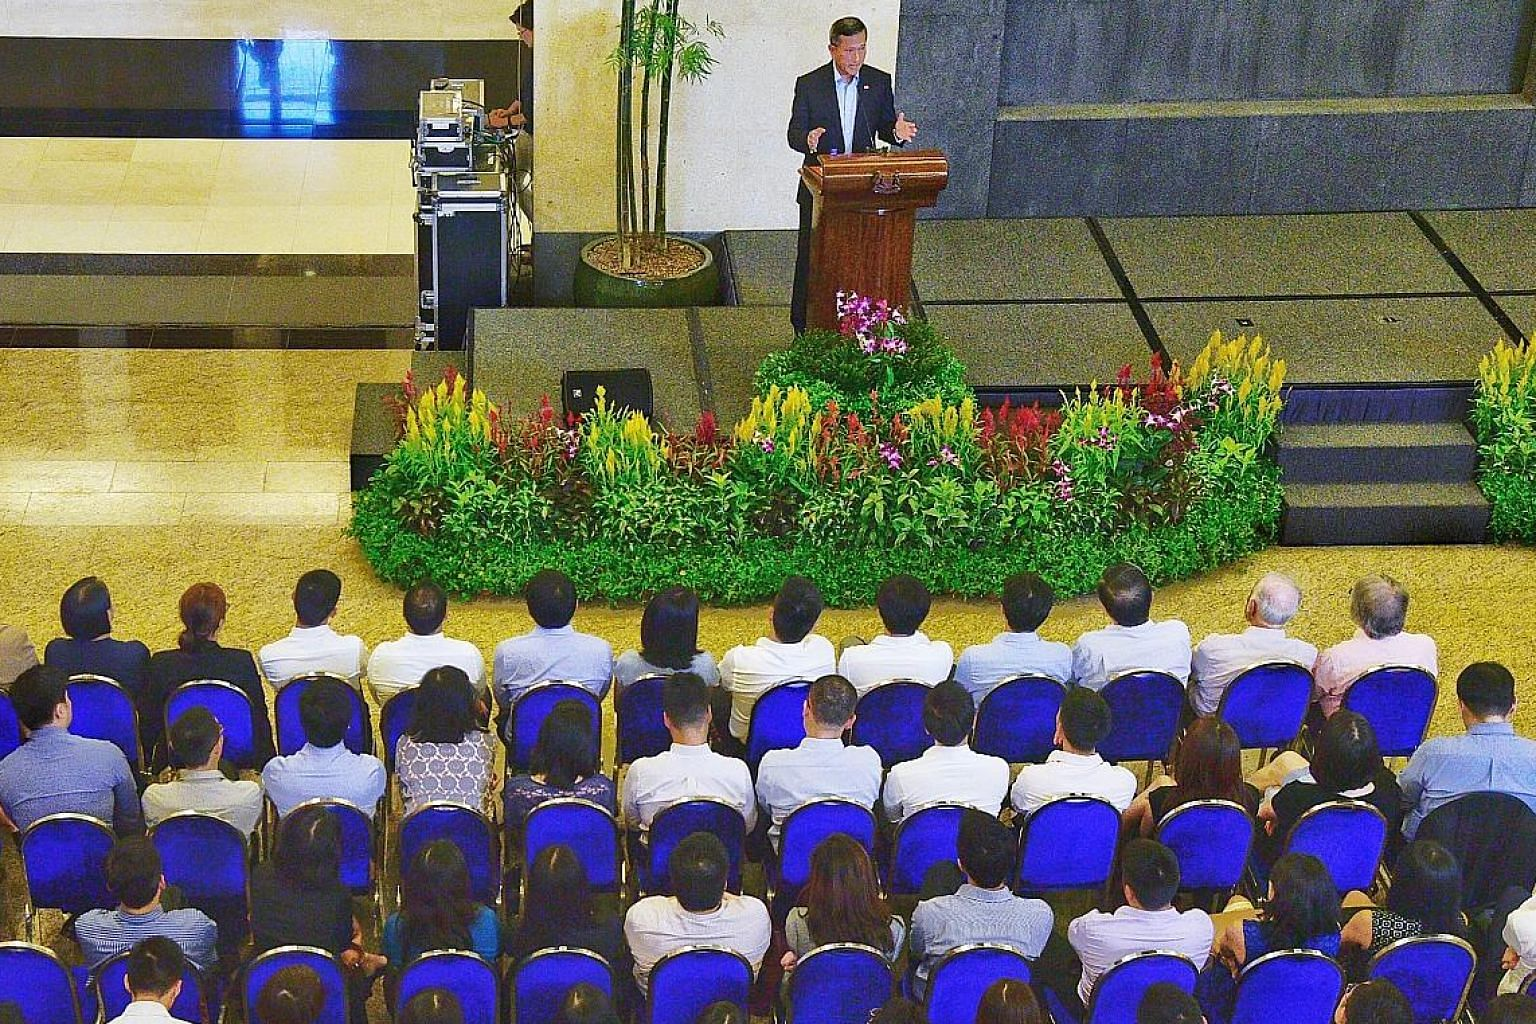 """At the townhall yesterday, Foreign Minister Vivian Balakrishnan called on MFA officers to """"anticipate frictions and difficulties from time to time"""" and be prepared to disagree if needed """"without being gratuitously disagreeable""""."""